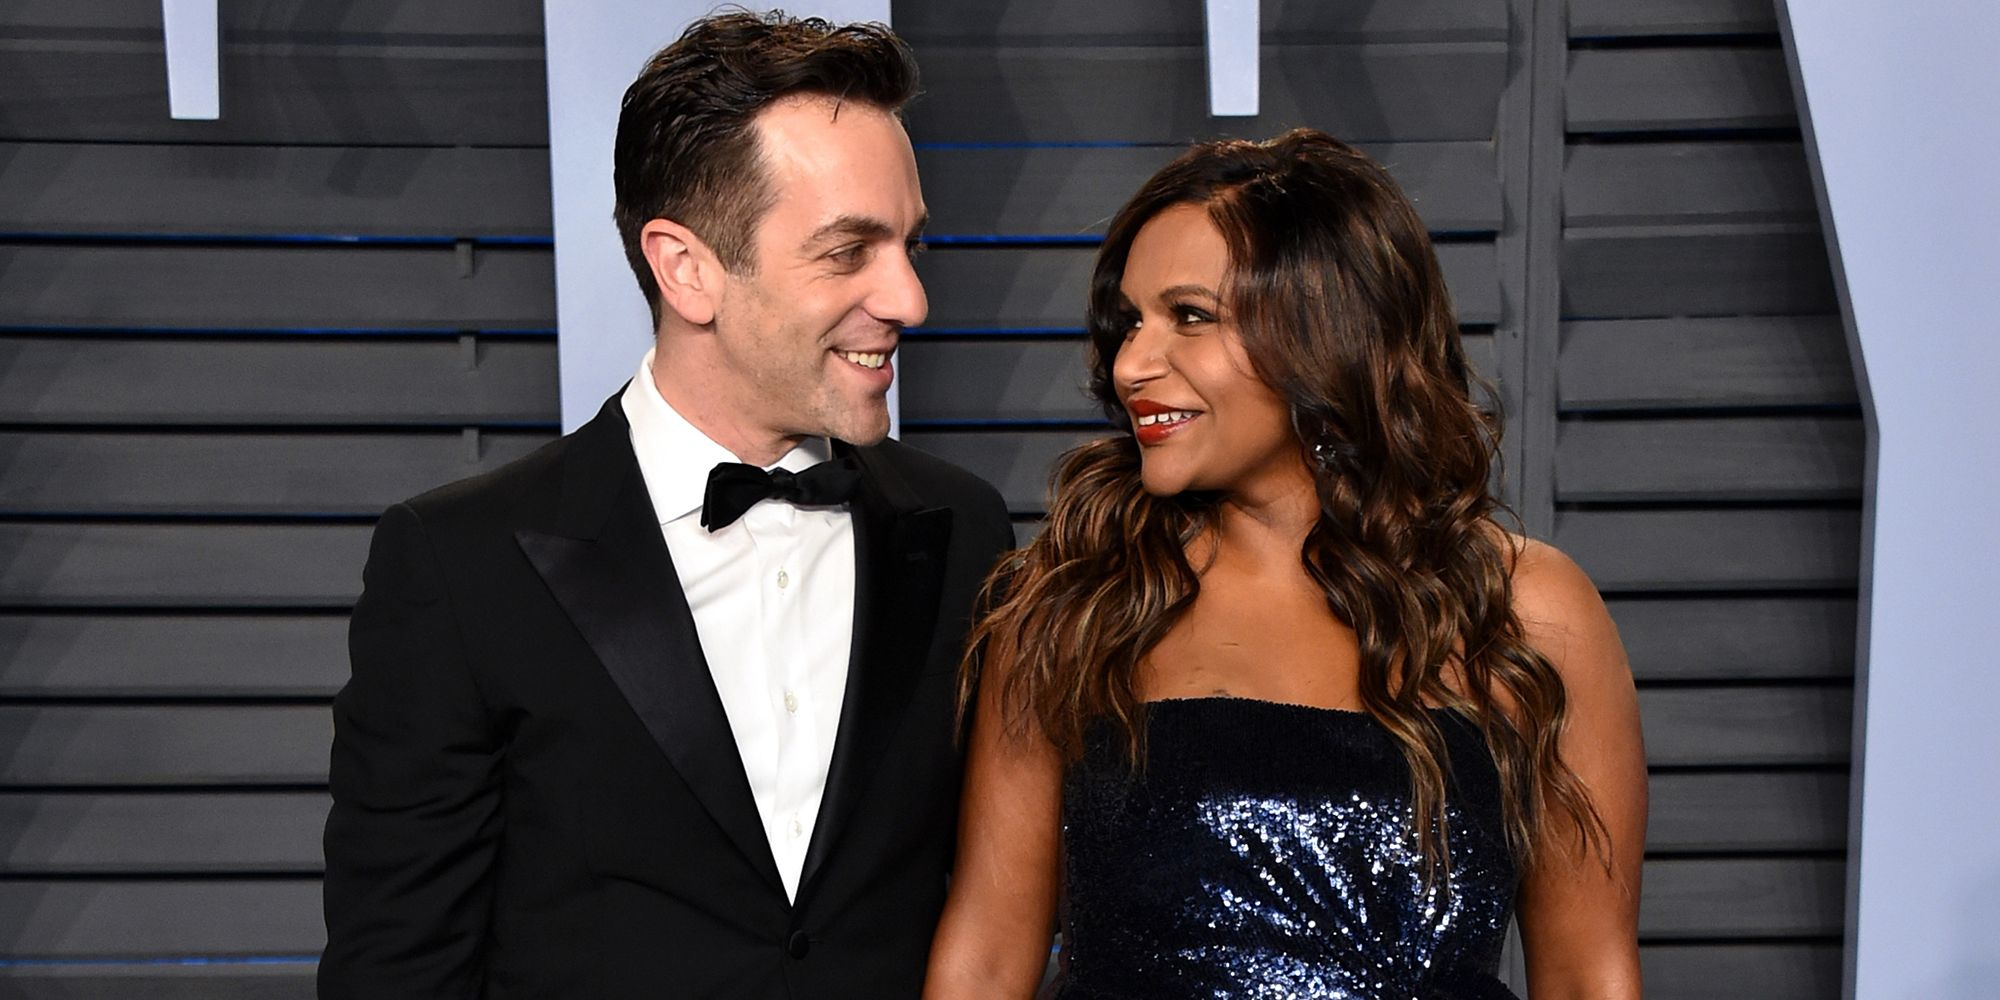 The mindy kaling dating